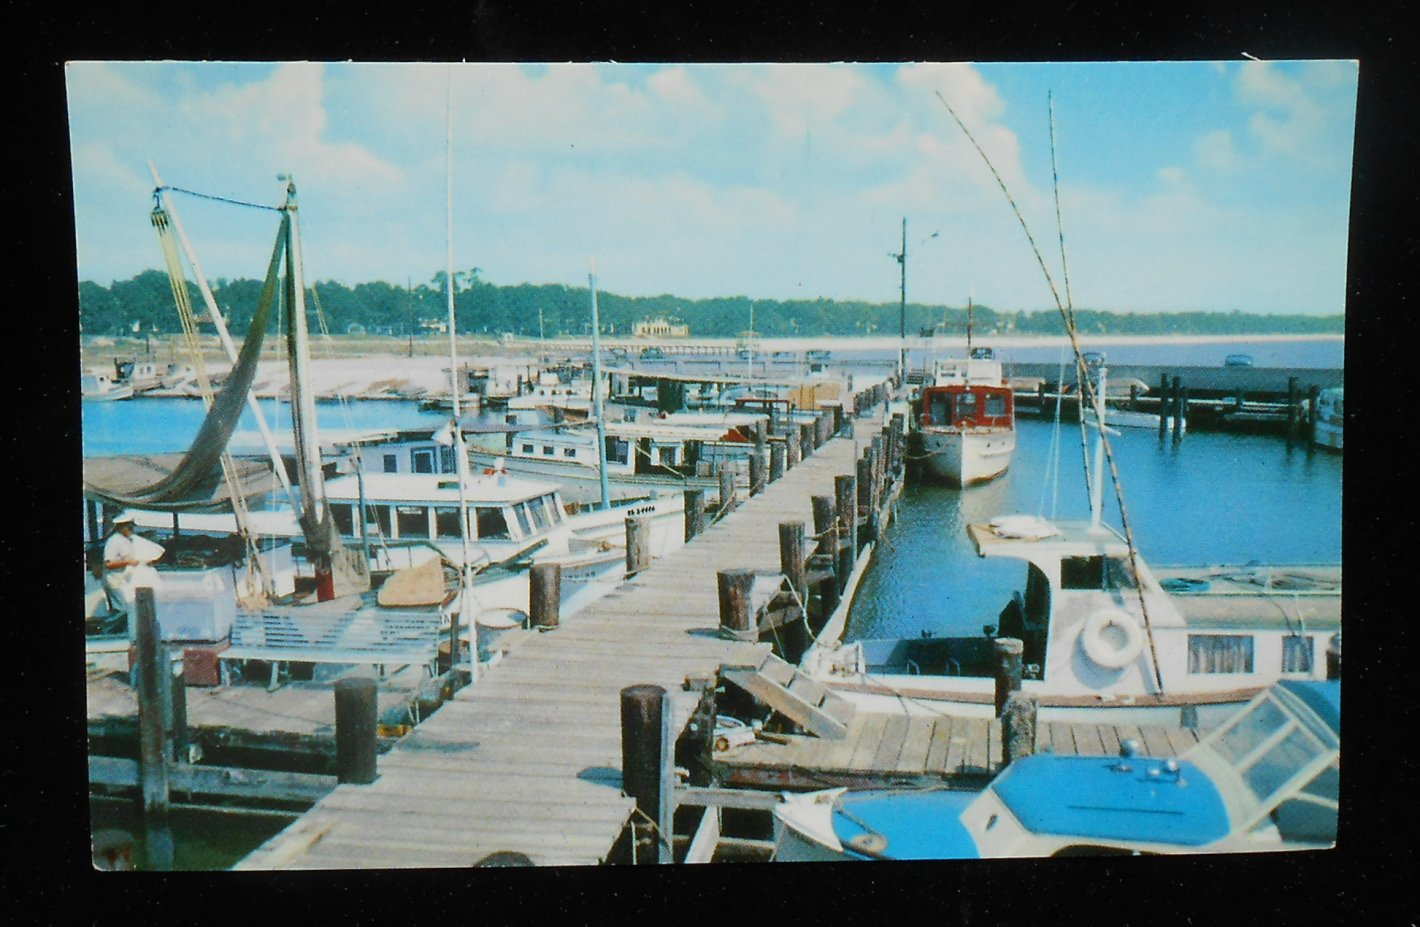 1950s deep sea fishing boats available for charter for Deep sea fishing gulfport ms